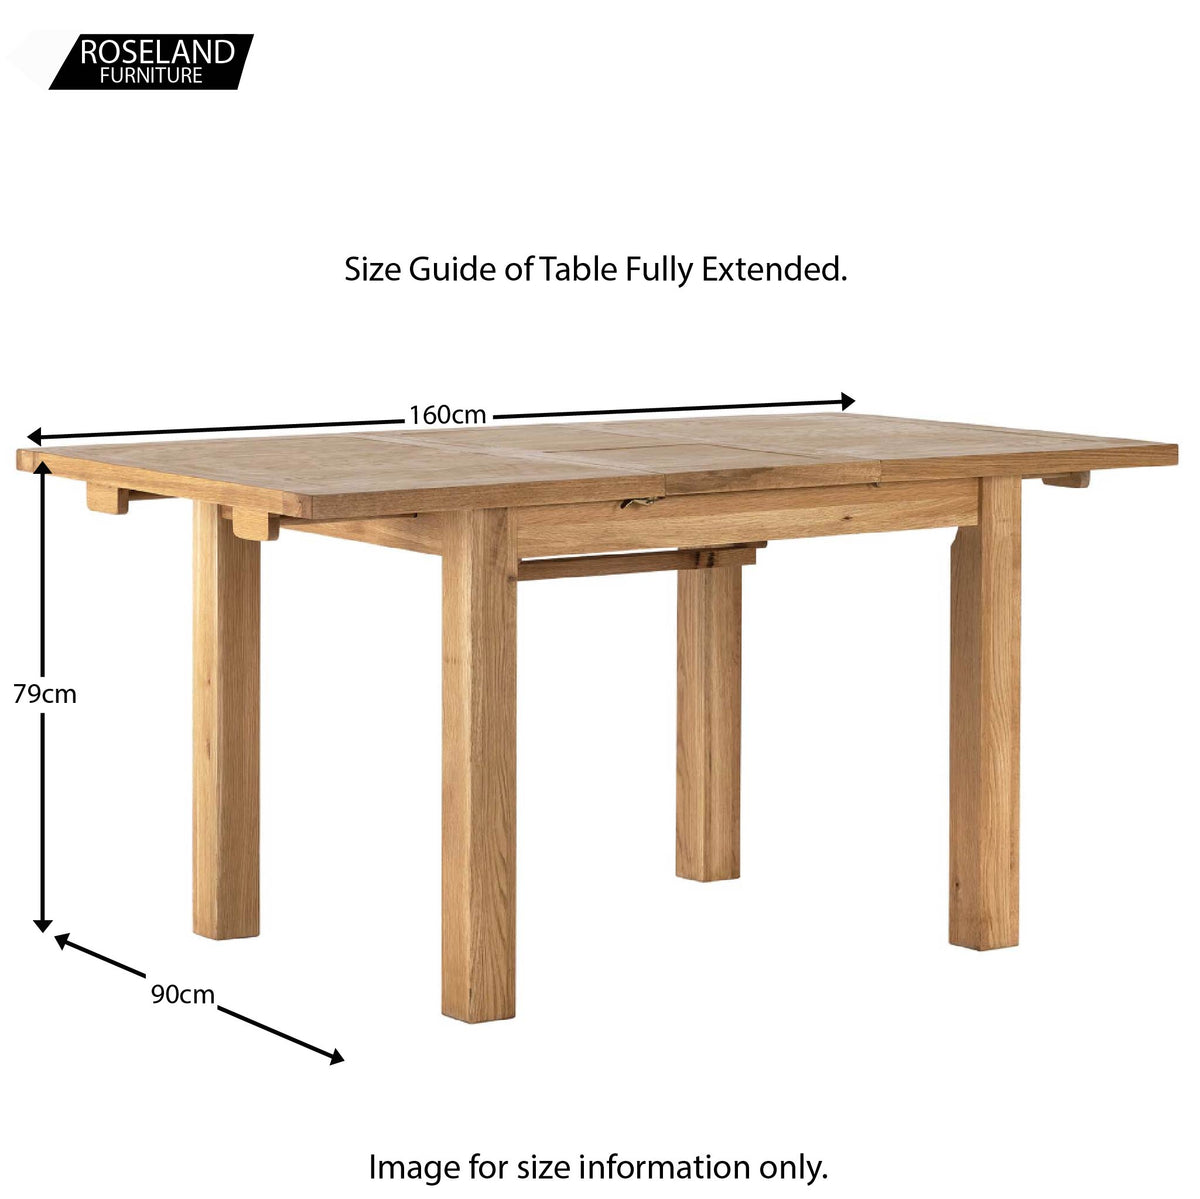 Dimensions with table open - Charlestown Oak Extendable Dining Table